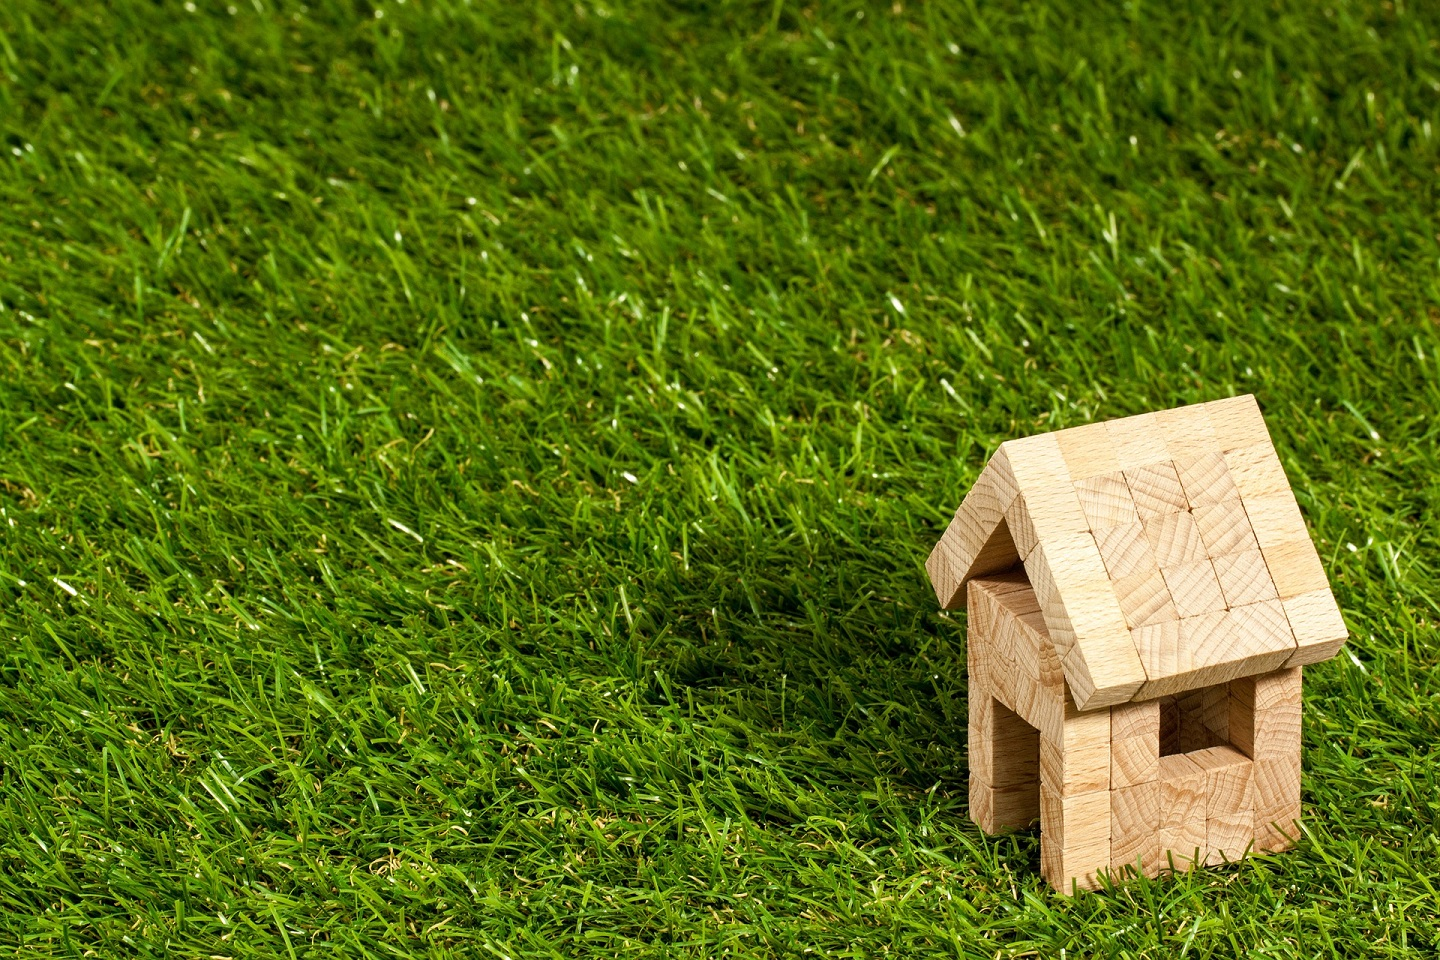 A house on the property is an effective measure for preventing illegal land grabbing